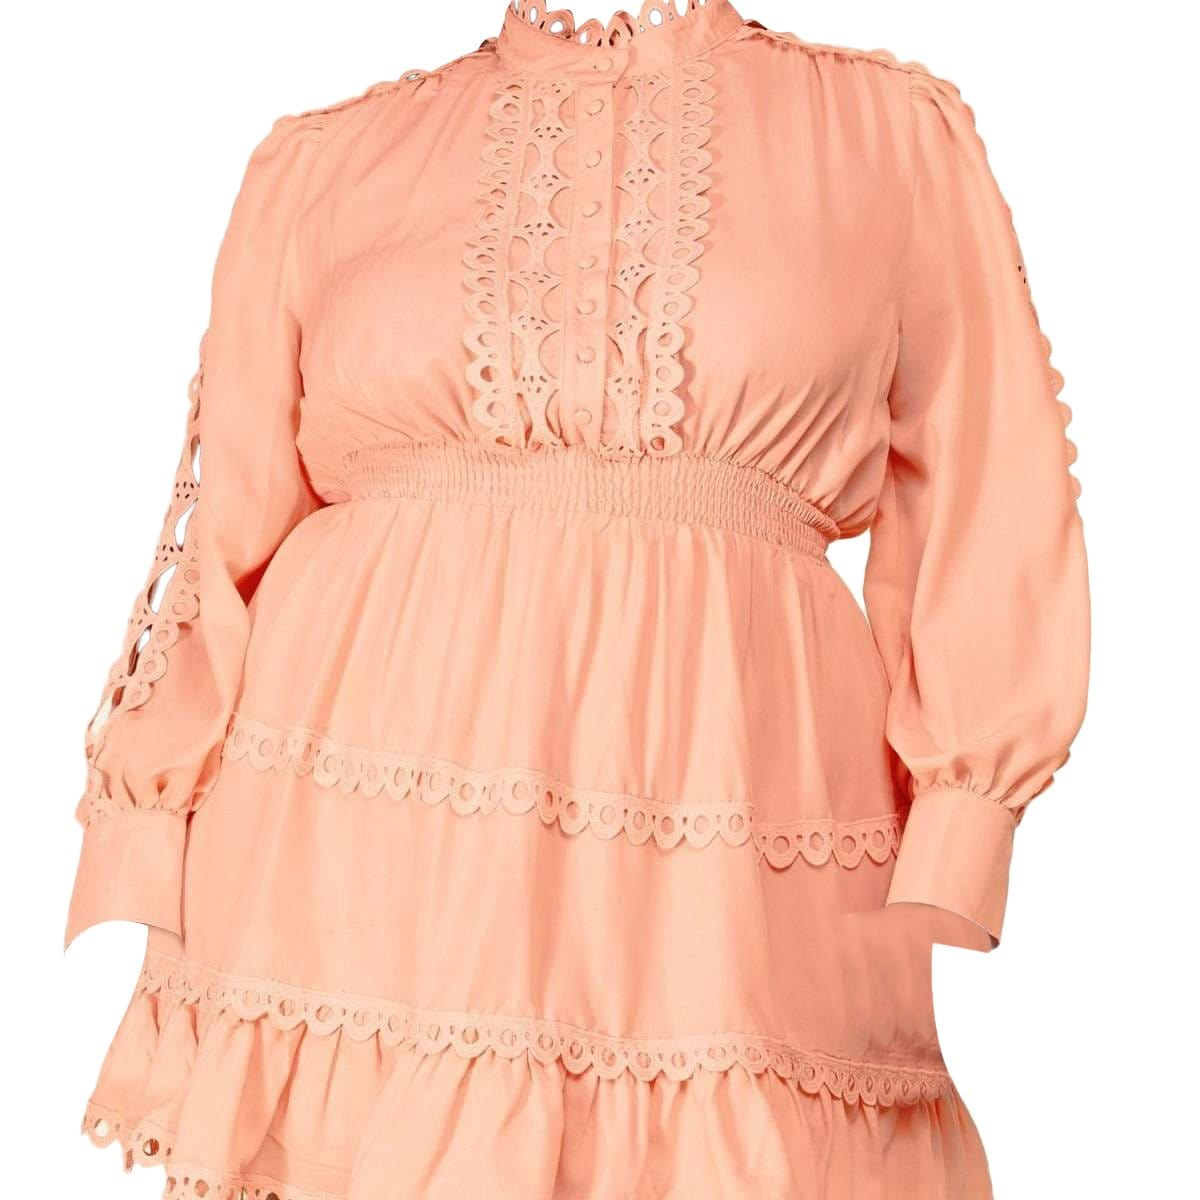 Posh Shoppe: Lace Long Sleeve Dress in Pink Dress